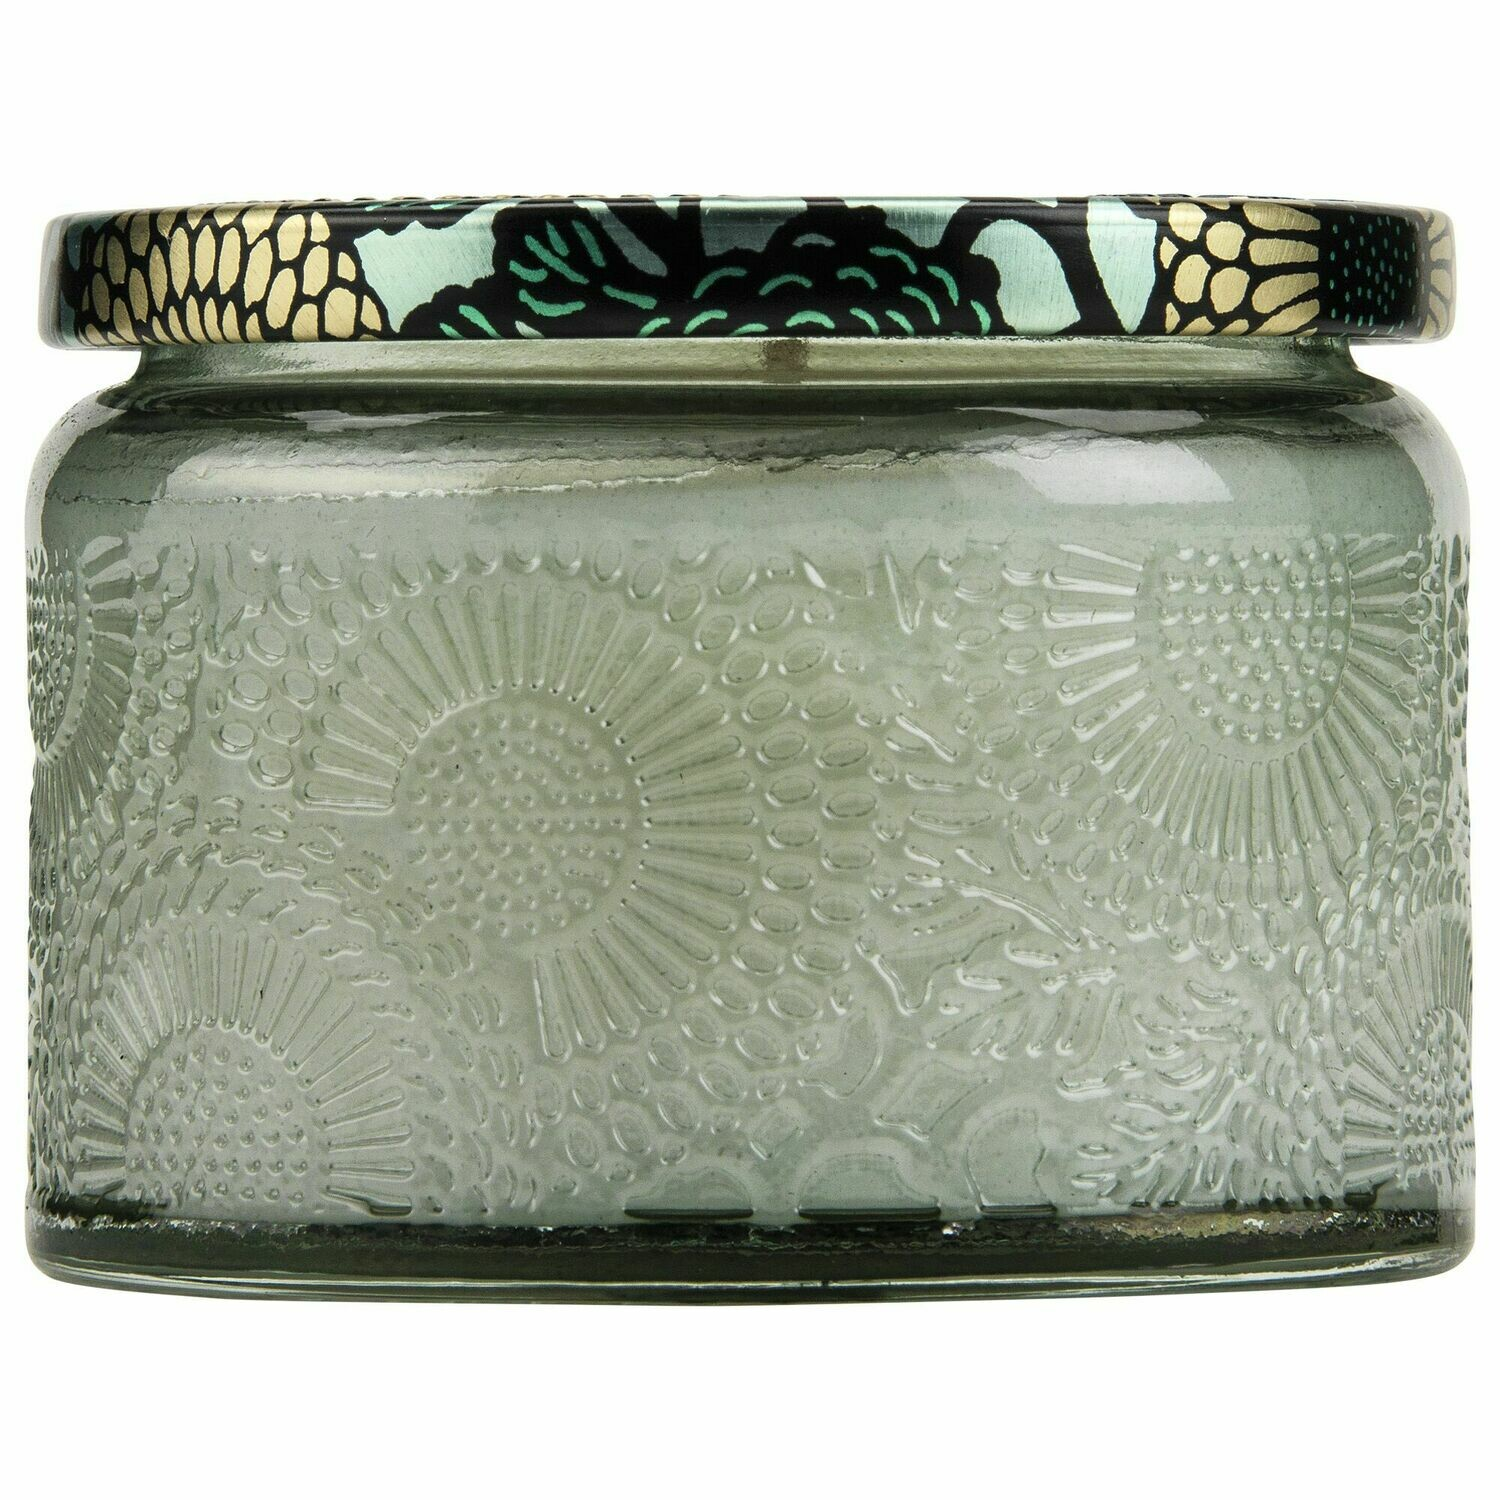 French Cade + Lavender Candle - Voluspa Petite Jar Candle